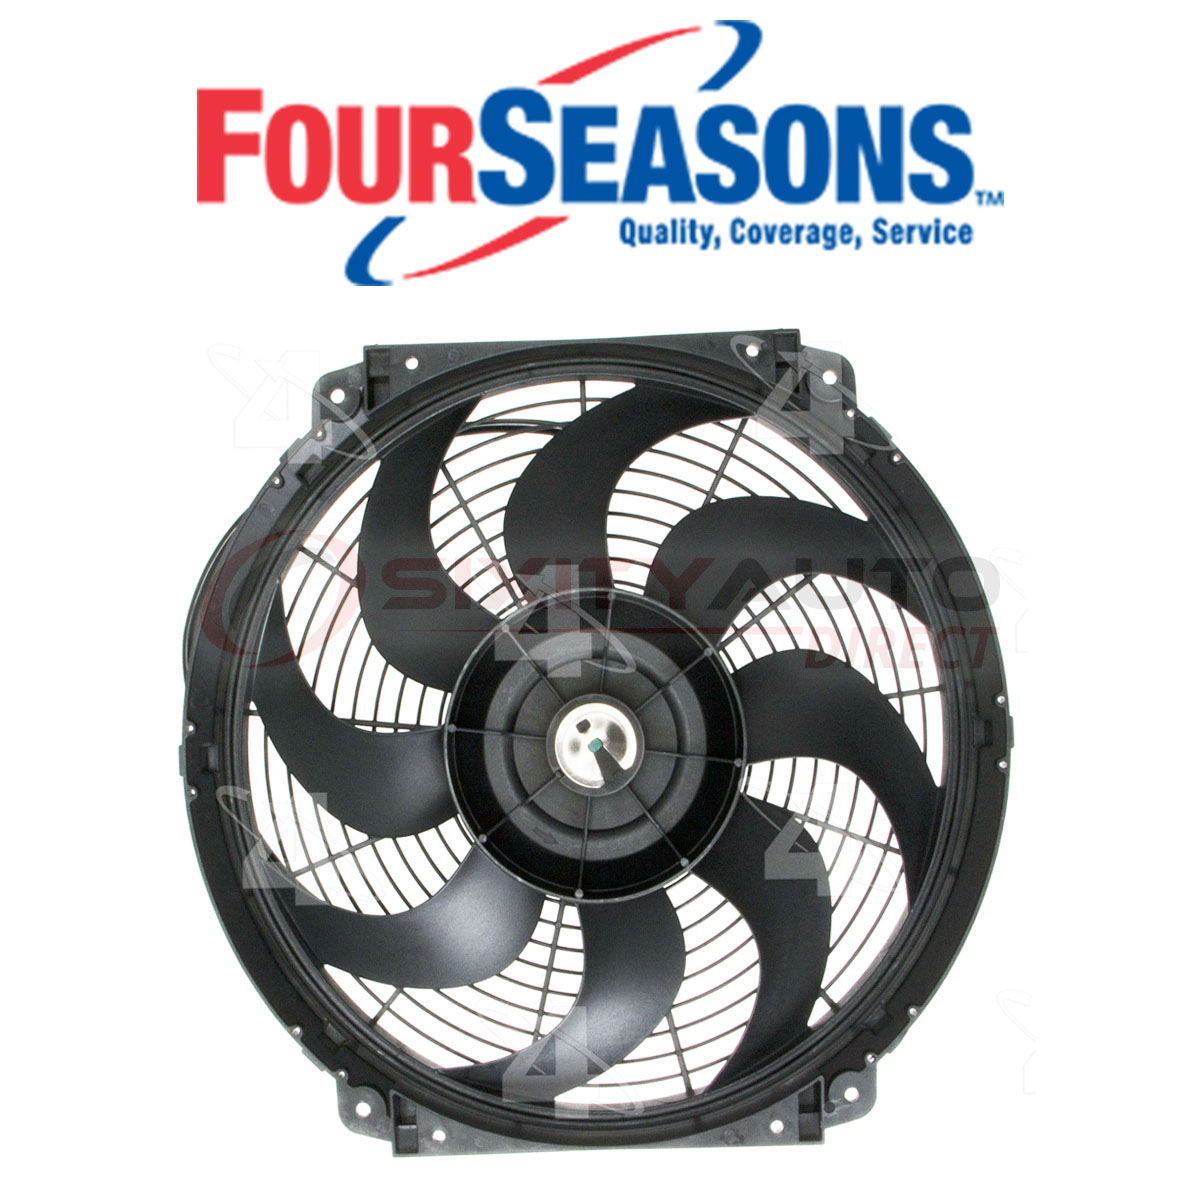 36895 4-Seasons Four-Seasons Cooling Fan Assembly New for Ram 50 Pickup 2000 S15